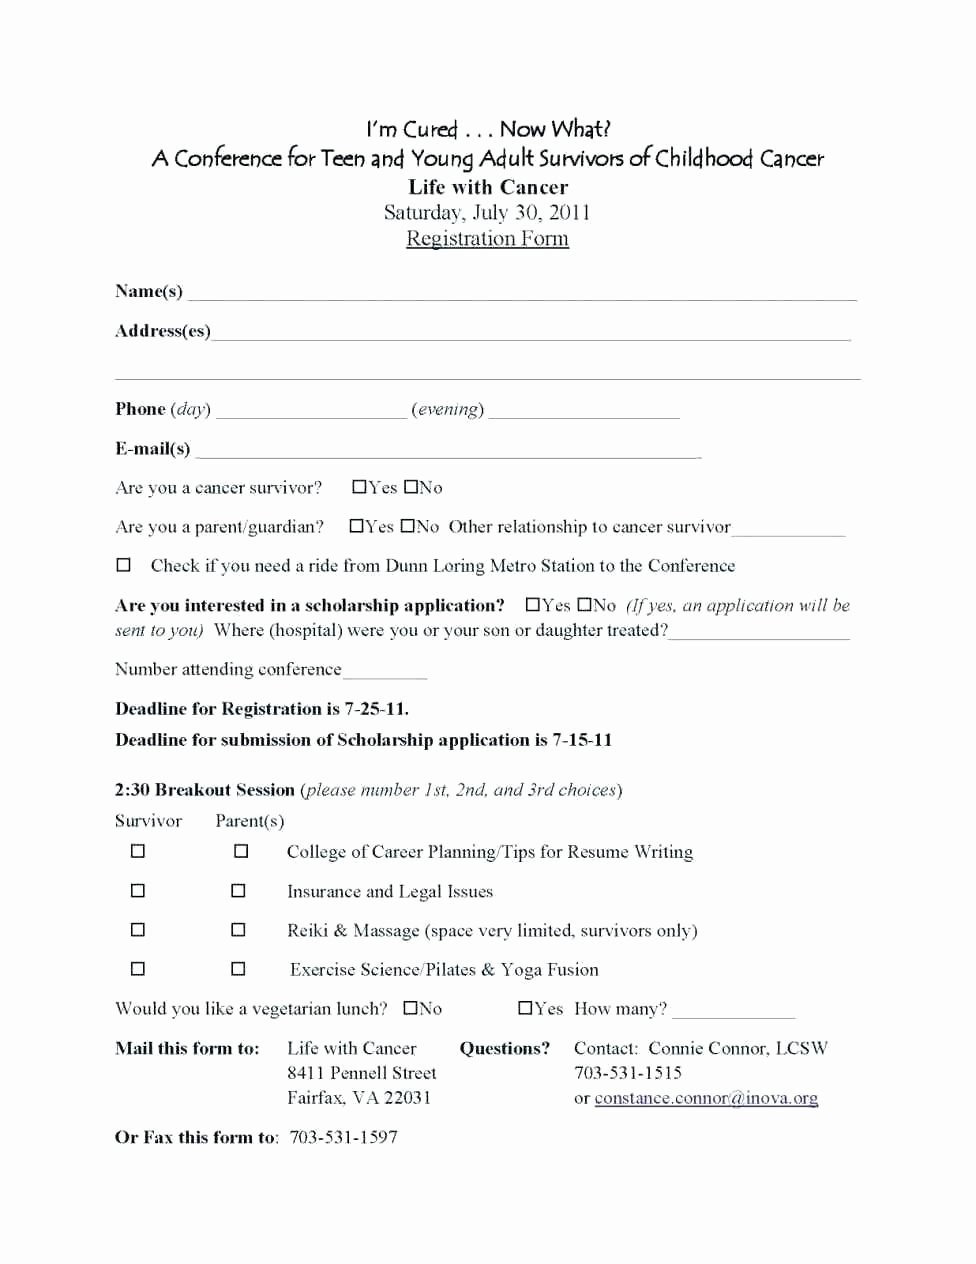 Conference Registration forms Template Unique College Application form Template